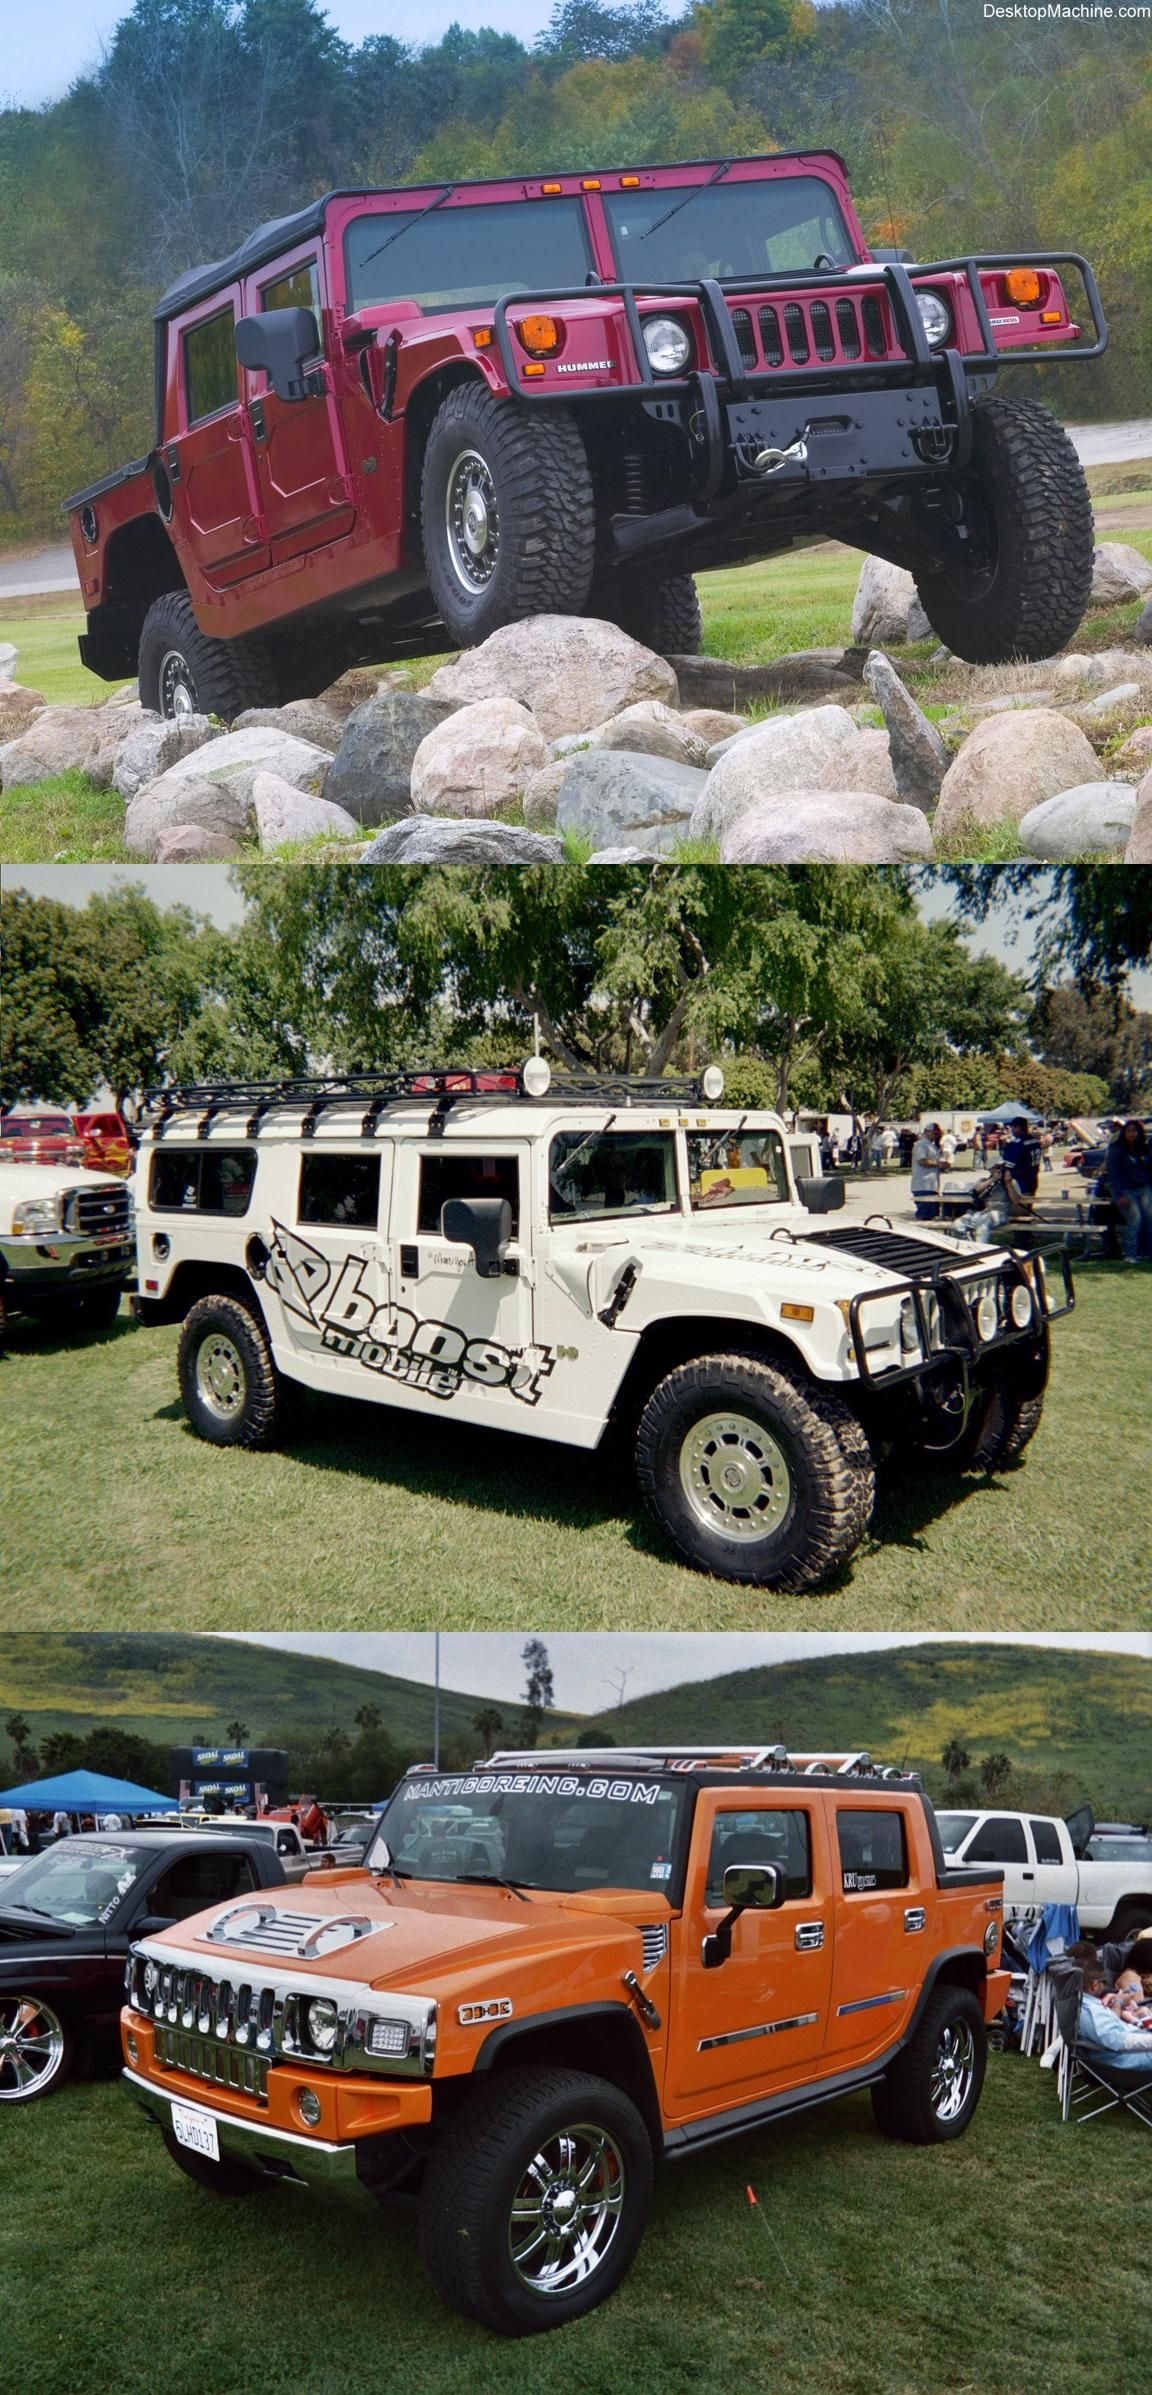 ORANGE HUMMER Apocalyptic car & assesories Pinterest